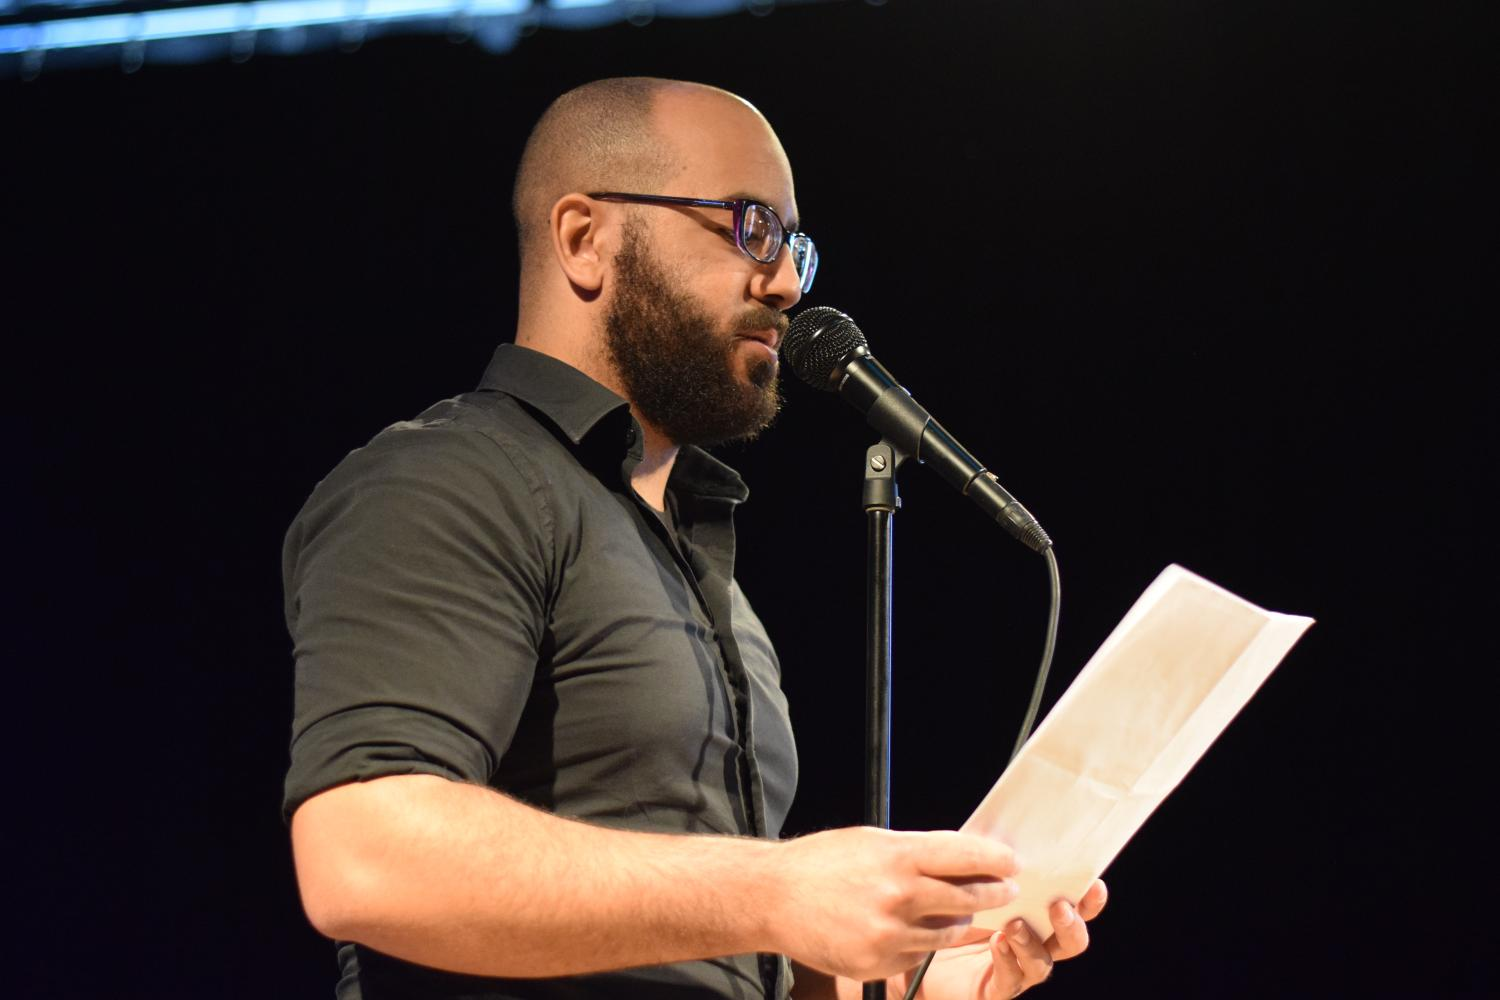 Marlin Jenkins reads his poem to the silent crowd. Before he began reading, he addressed the crowd, creating a personal, undaunting environment. You with us? he asked the crowd towards the end of the reading. They responded positively. Beautiful.